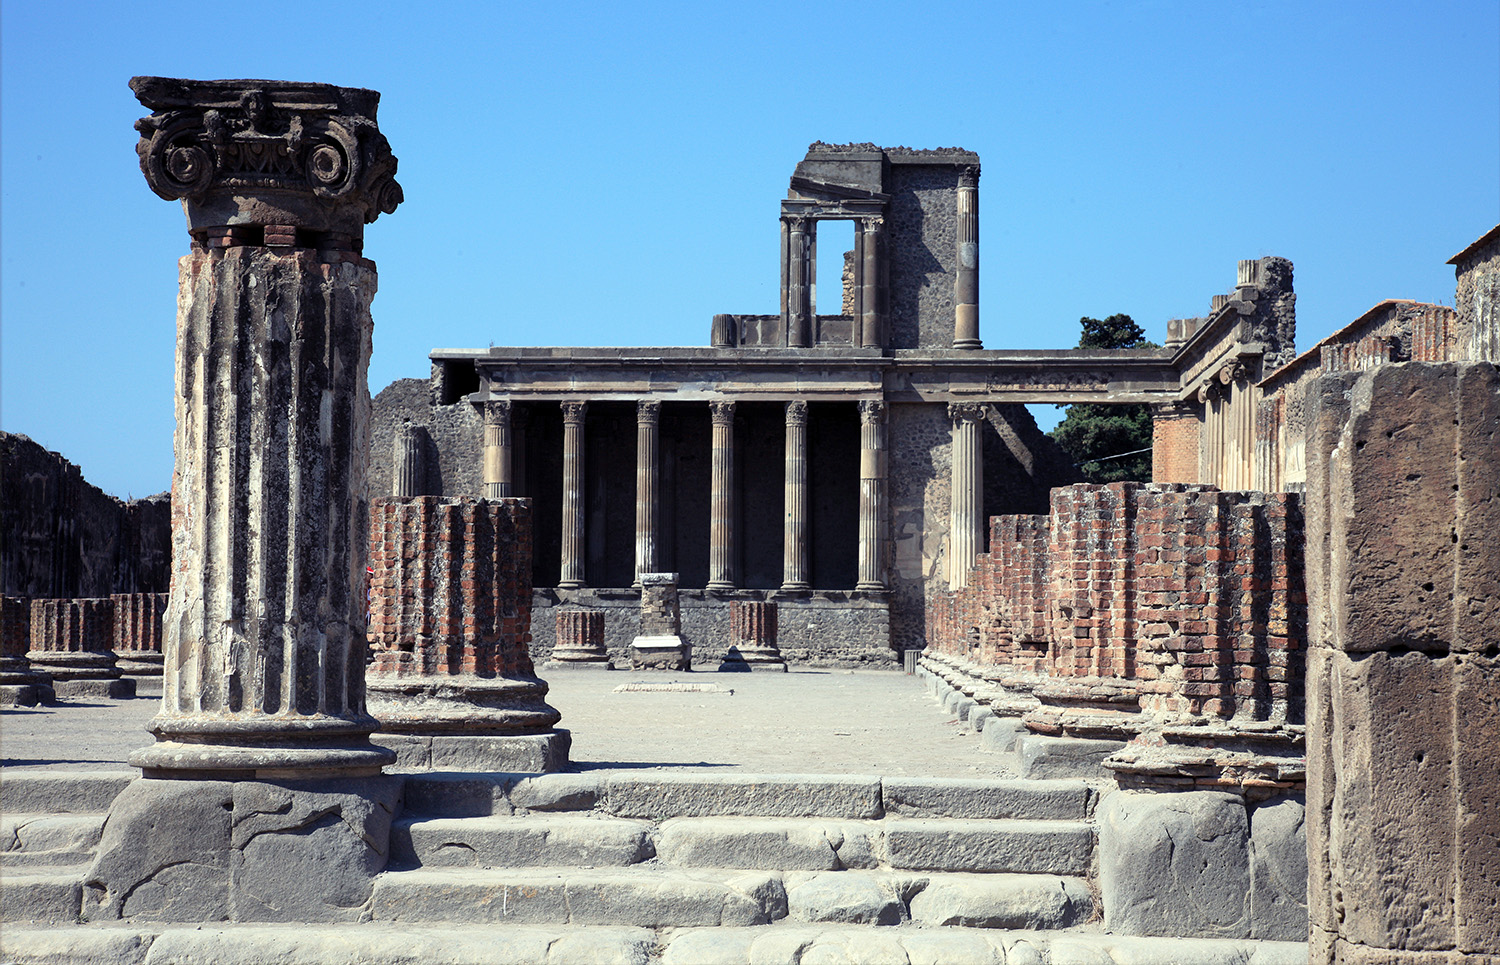 The Remarkable Ruins of Pompeii